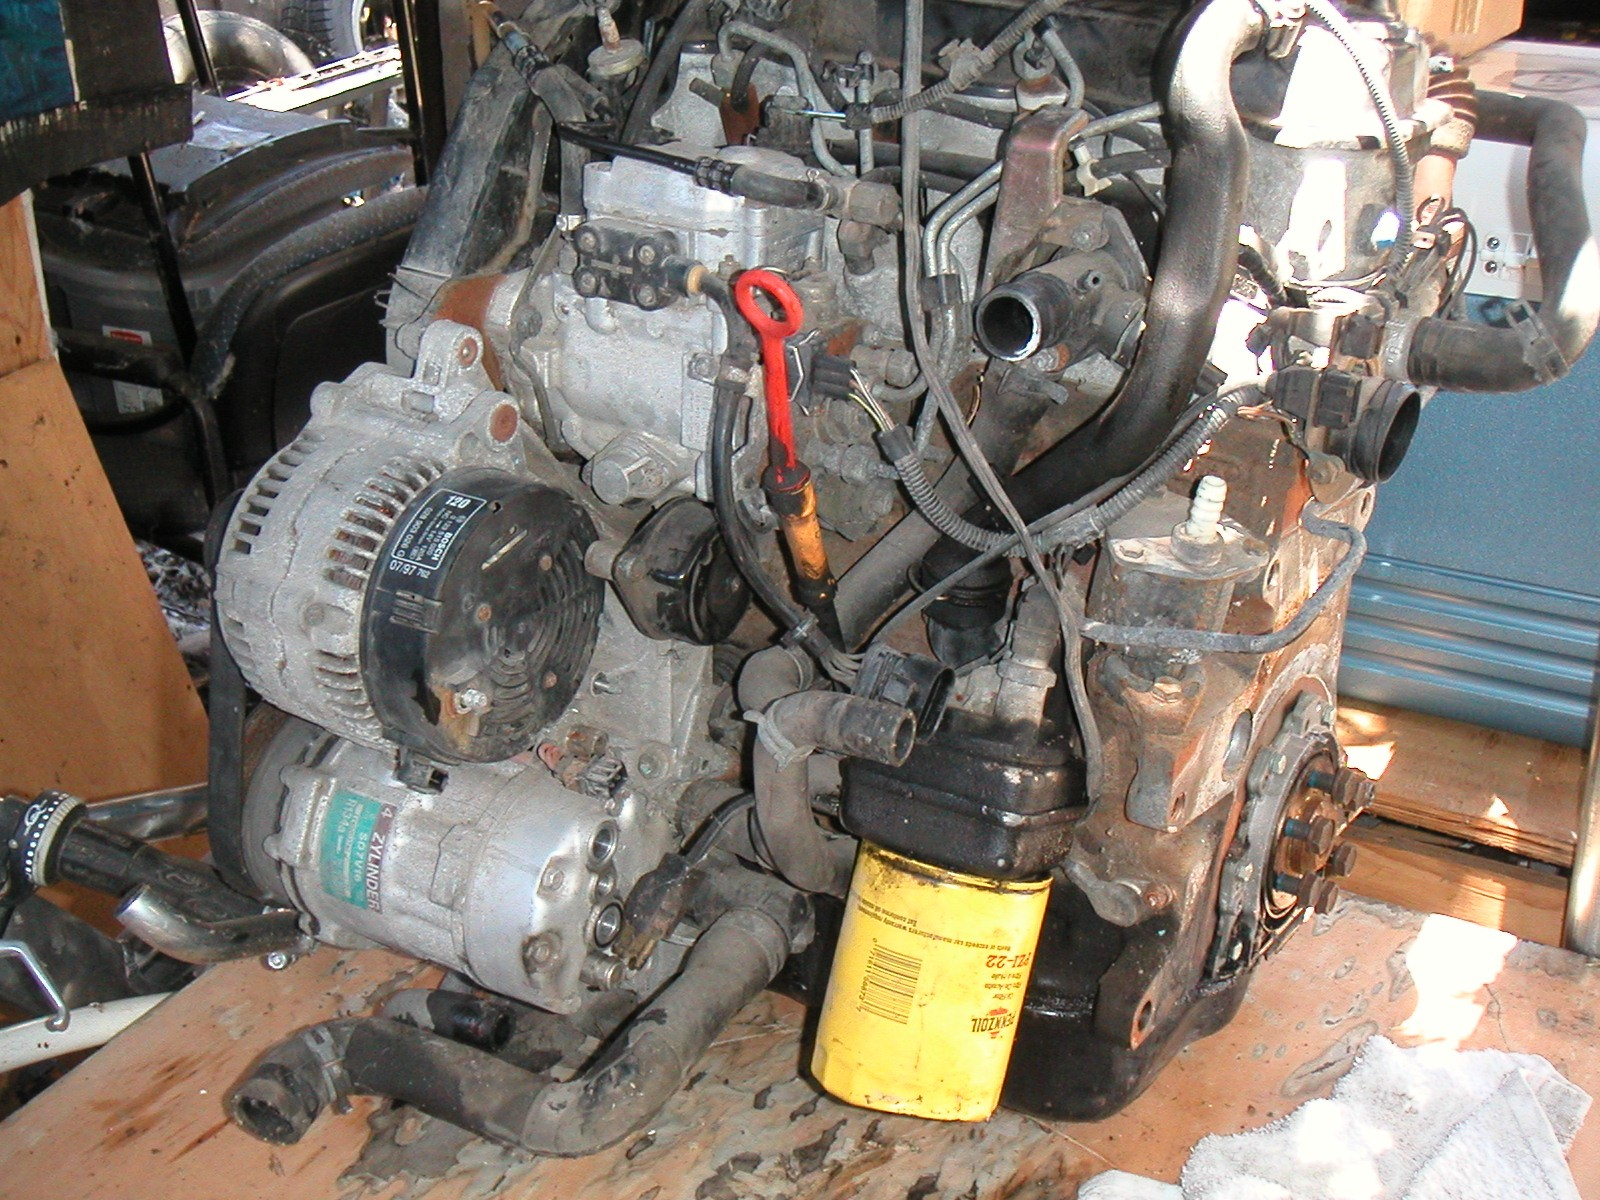 2001 Jetta Engine Diagram I Need Help Please 2001 Vw Jetta Vr6 Of 2001 Jetta  Engine